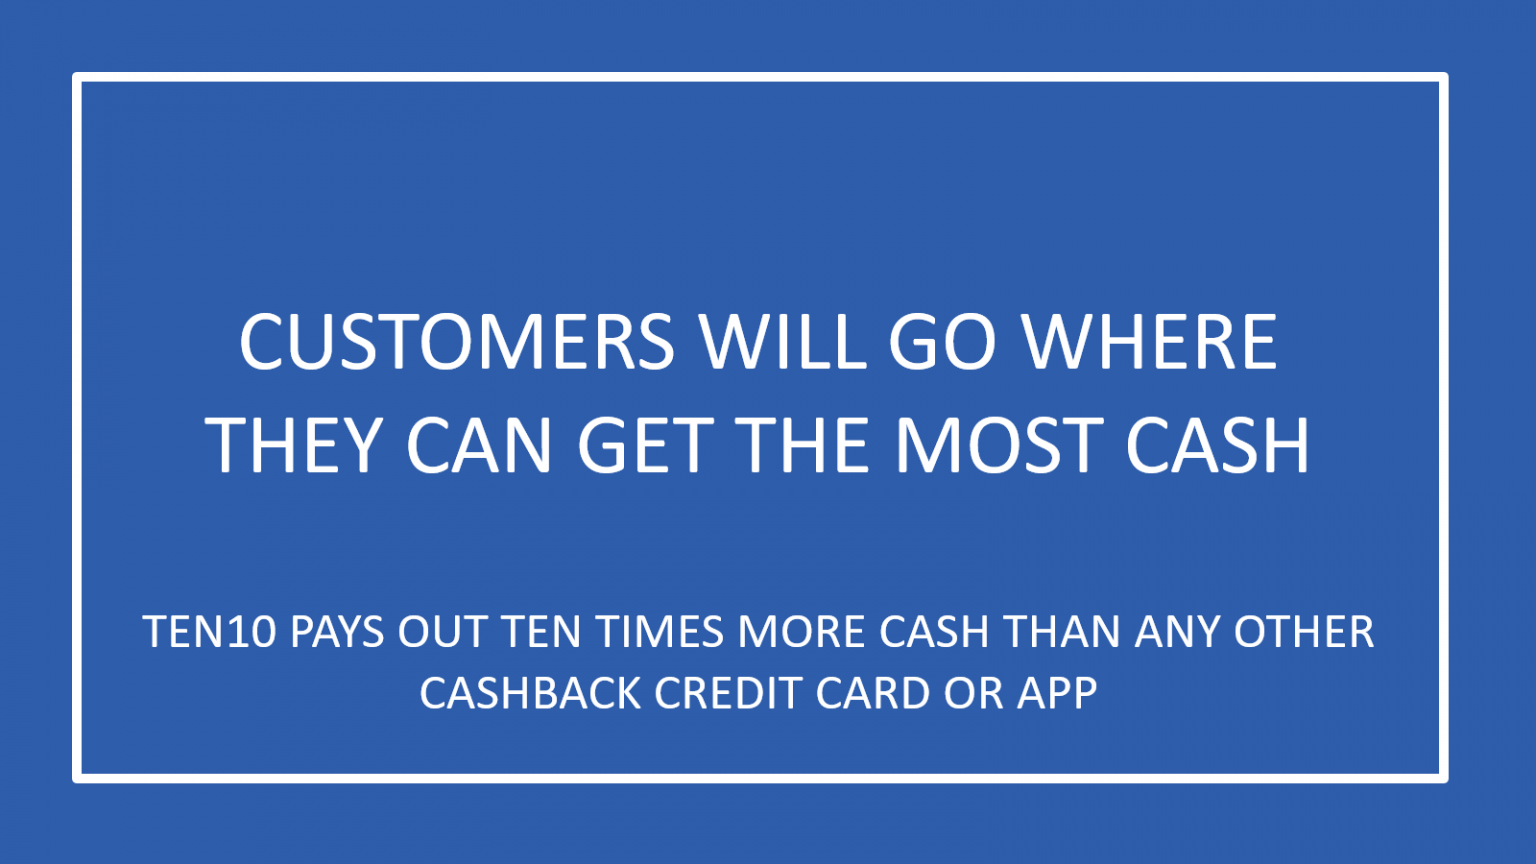 1616 - Ten times more cashback - Ten10